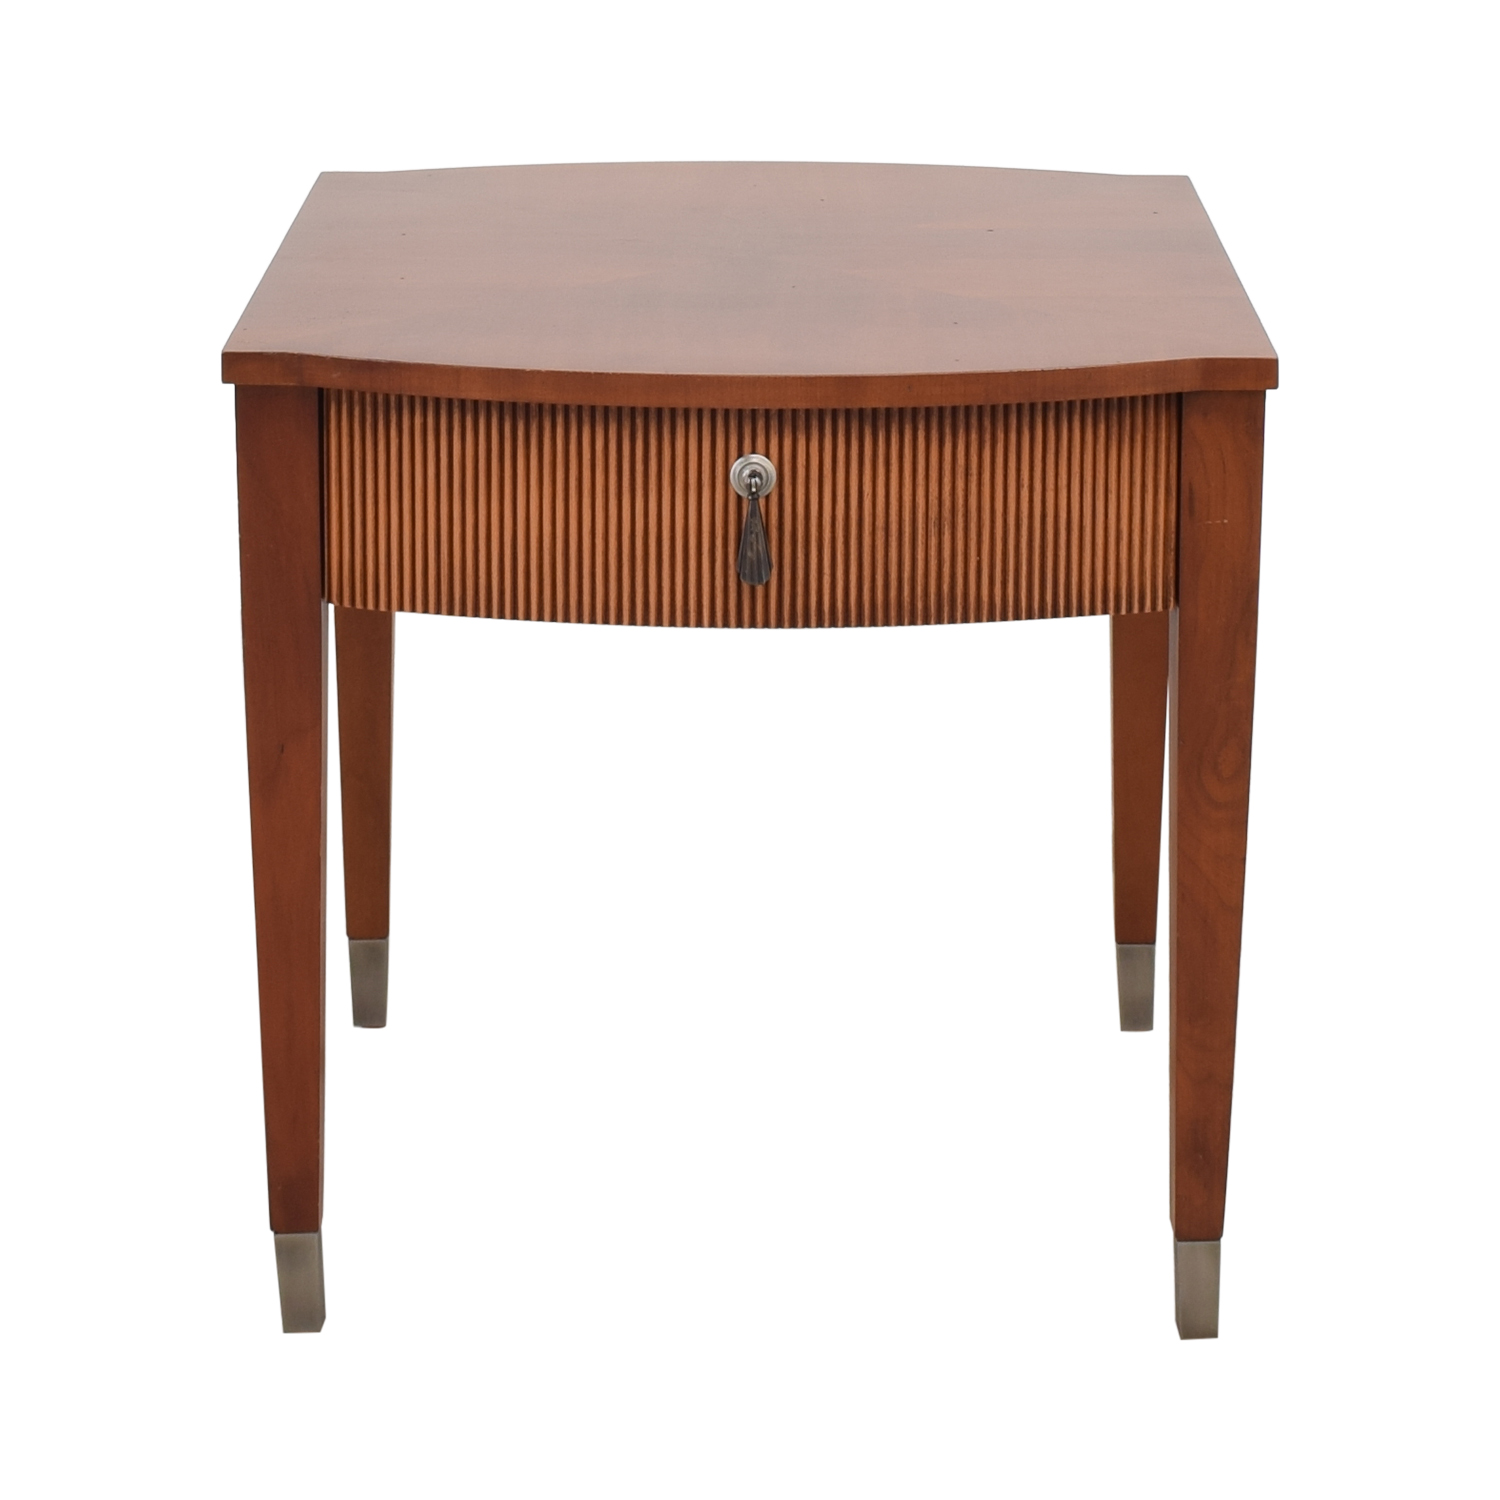 Ethan Allen Nightstand / End Tables